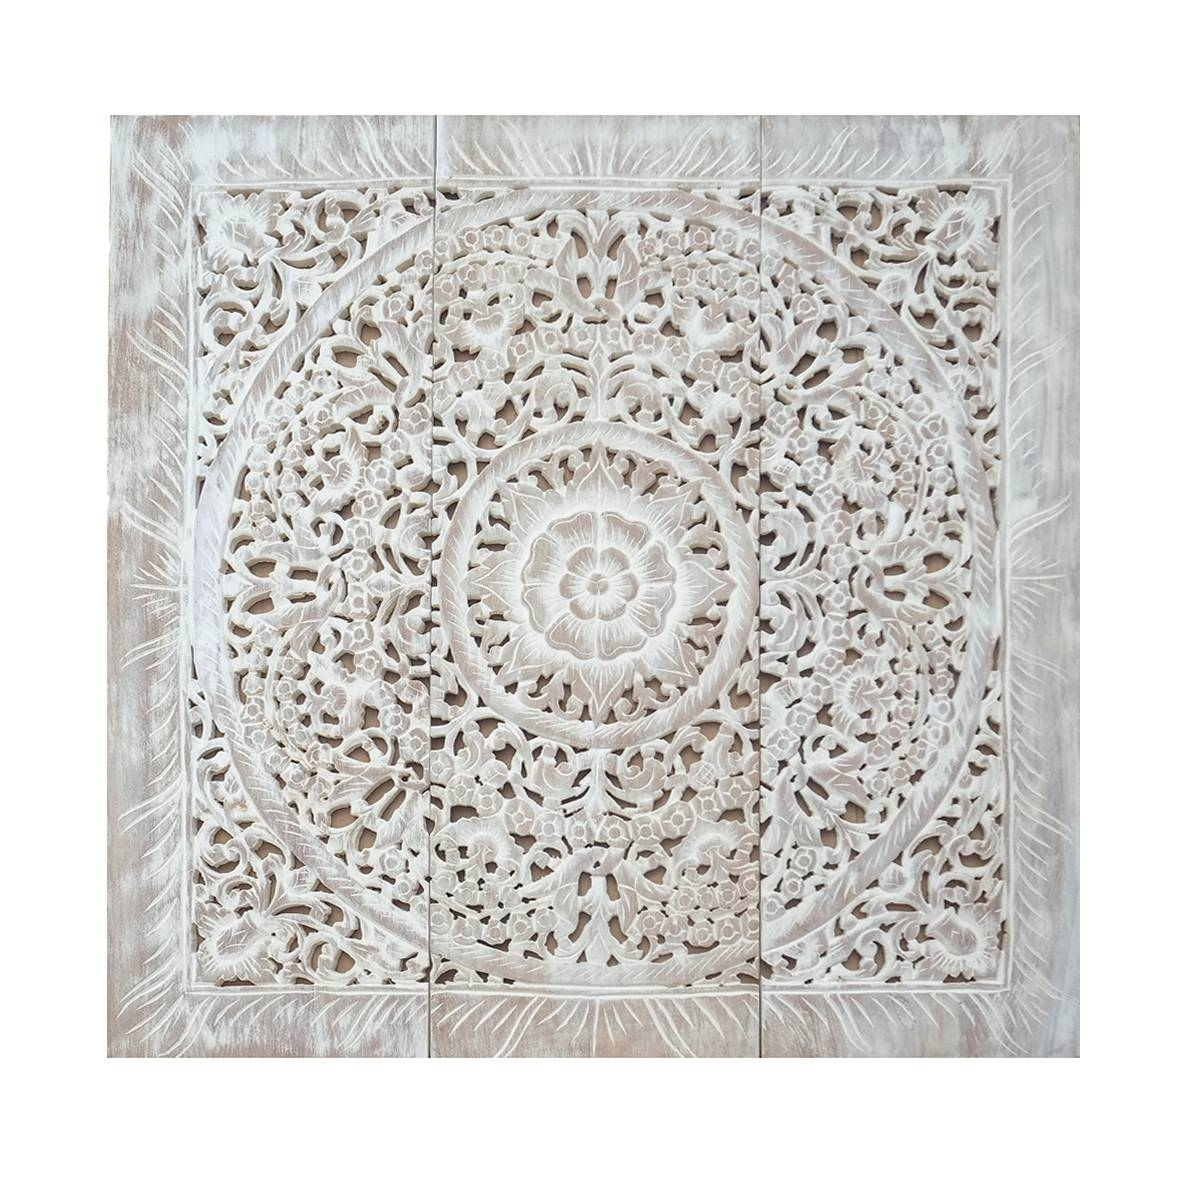 Balinese Antique Wood Carving Wall Art Panel – Siam Sawadee Inside Most Recently Released Wood Carved Wall Art Panels (View 1 of 25)